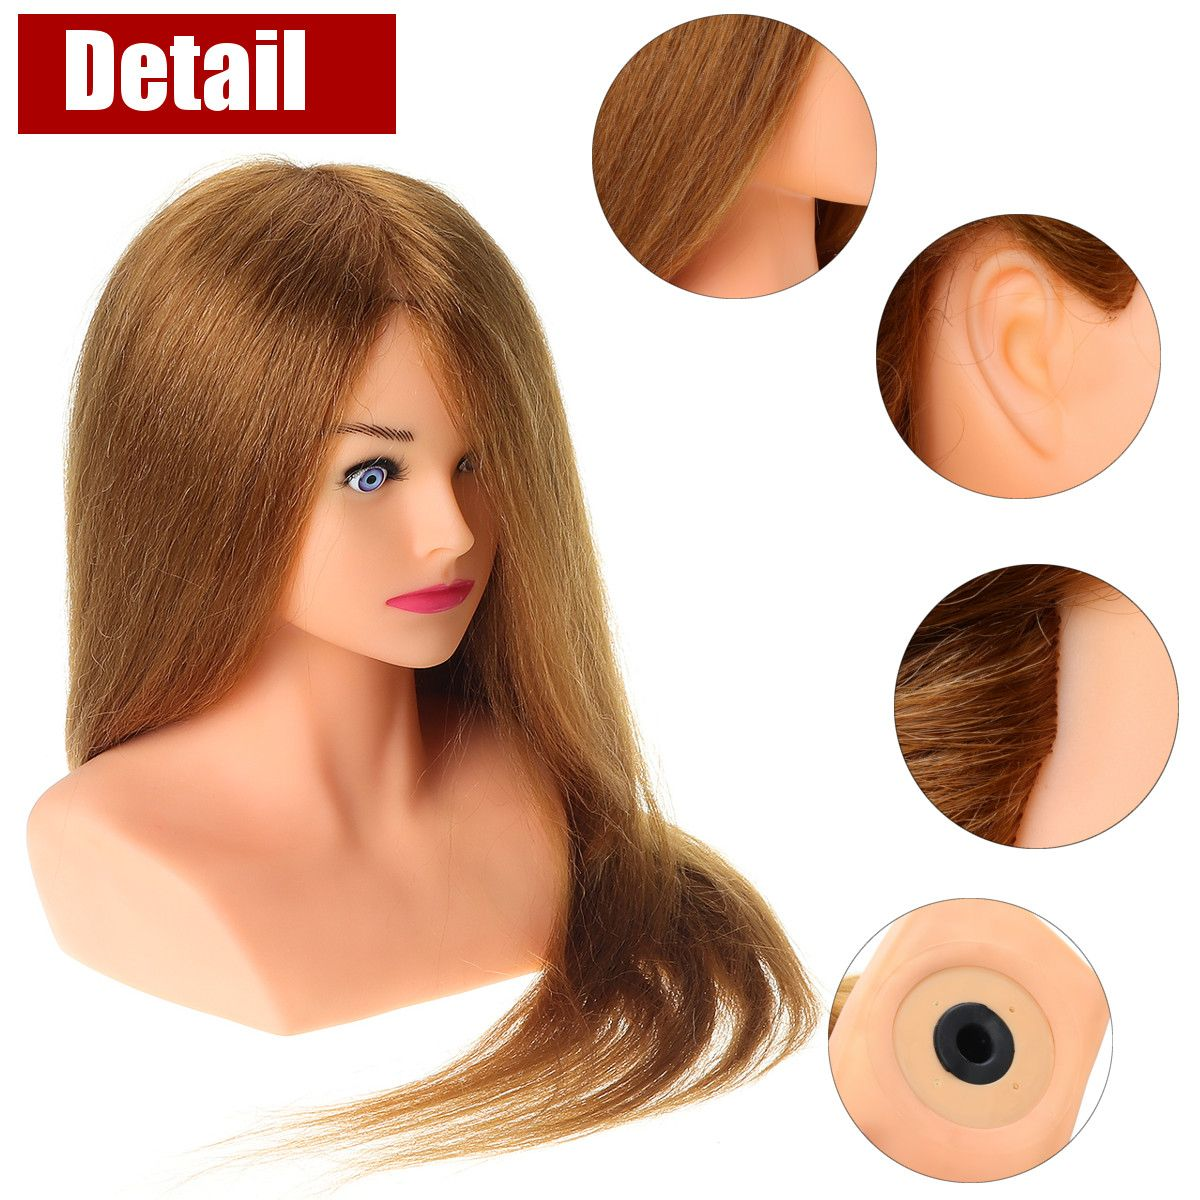 Hairdressing Mannequin Head With 100% Natural Human Hair For Hairstyles Hairdressers Curling Practice Training Head 24 Inches